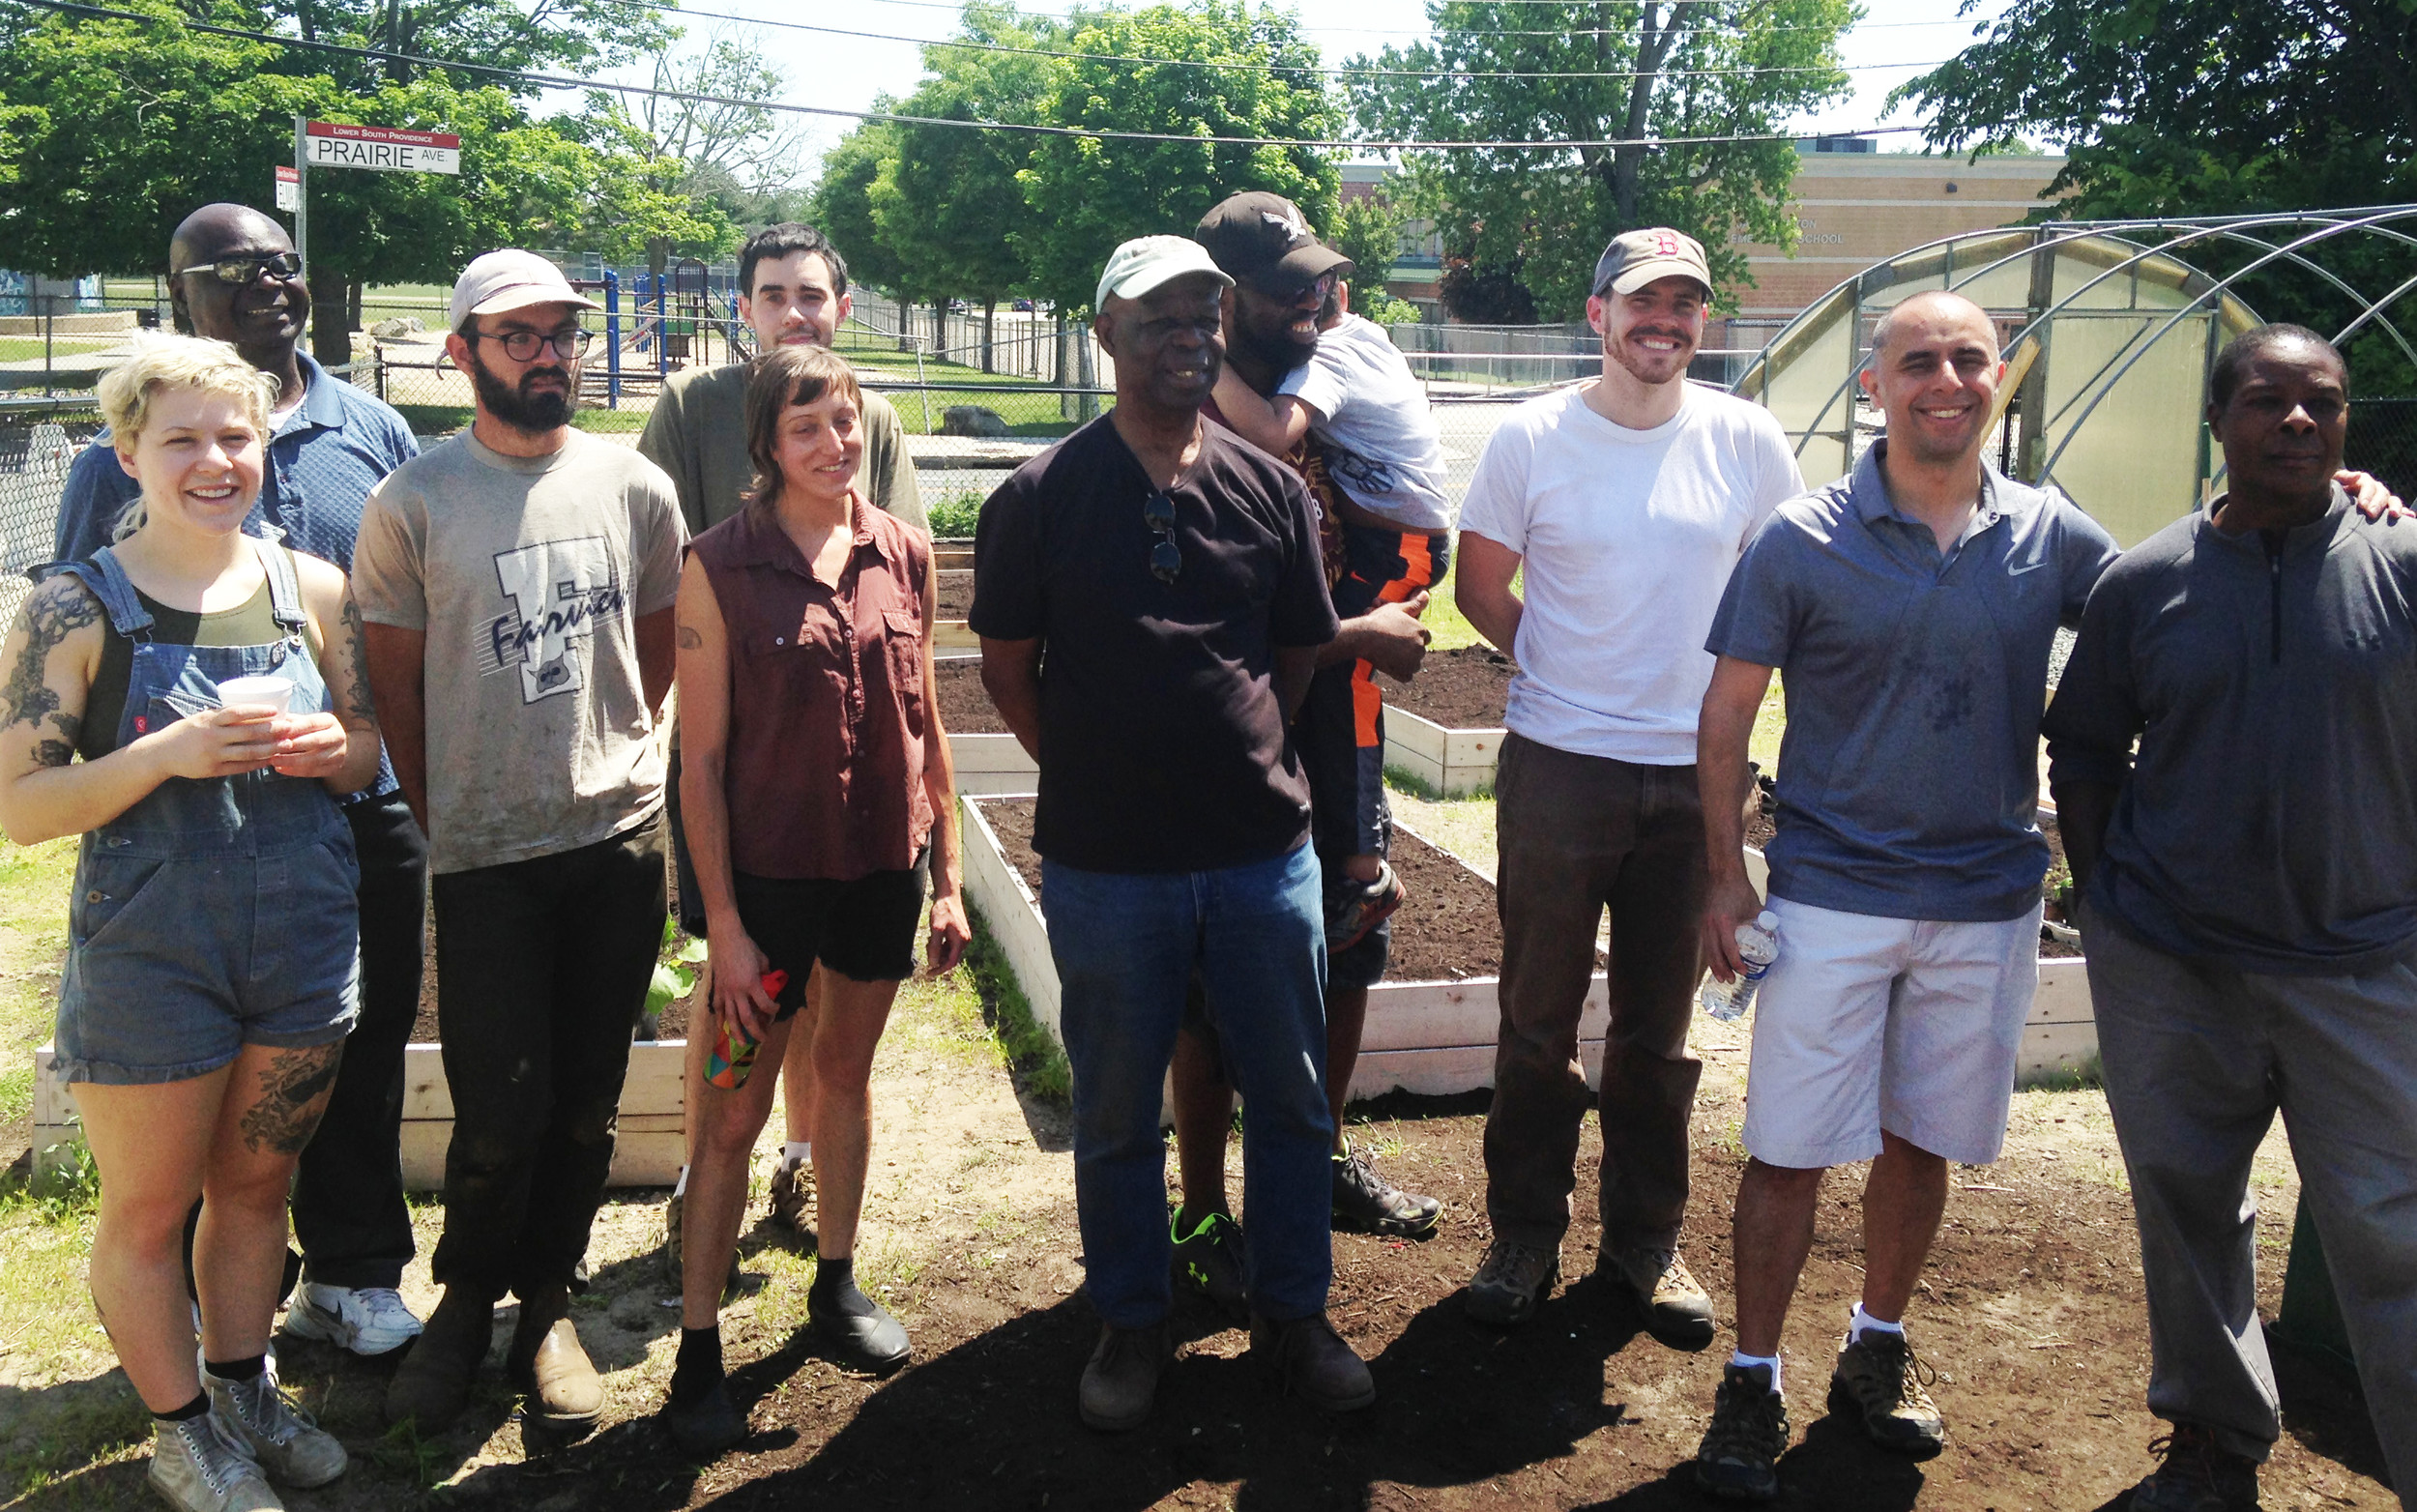 A crew of volunteers worked together to restore the damaged urban growing space on Saturday, June 10, a happy ending. Second from right: Providence Mayor Jorge Elorza, who pitched in to help. Julius Kolawole, center, is the president of the African Alliance of Rhode Island.